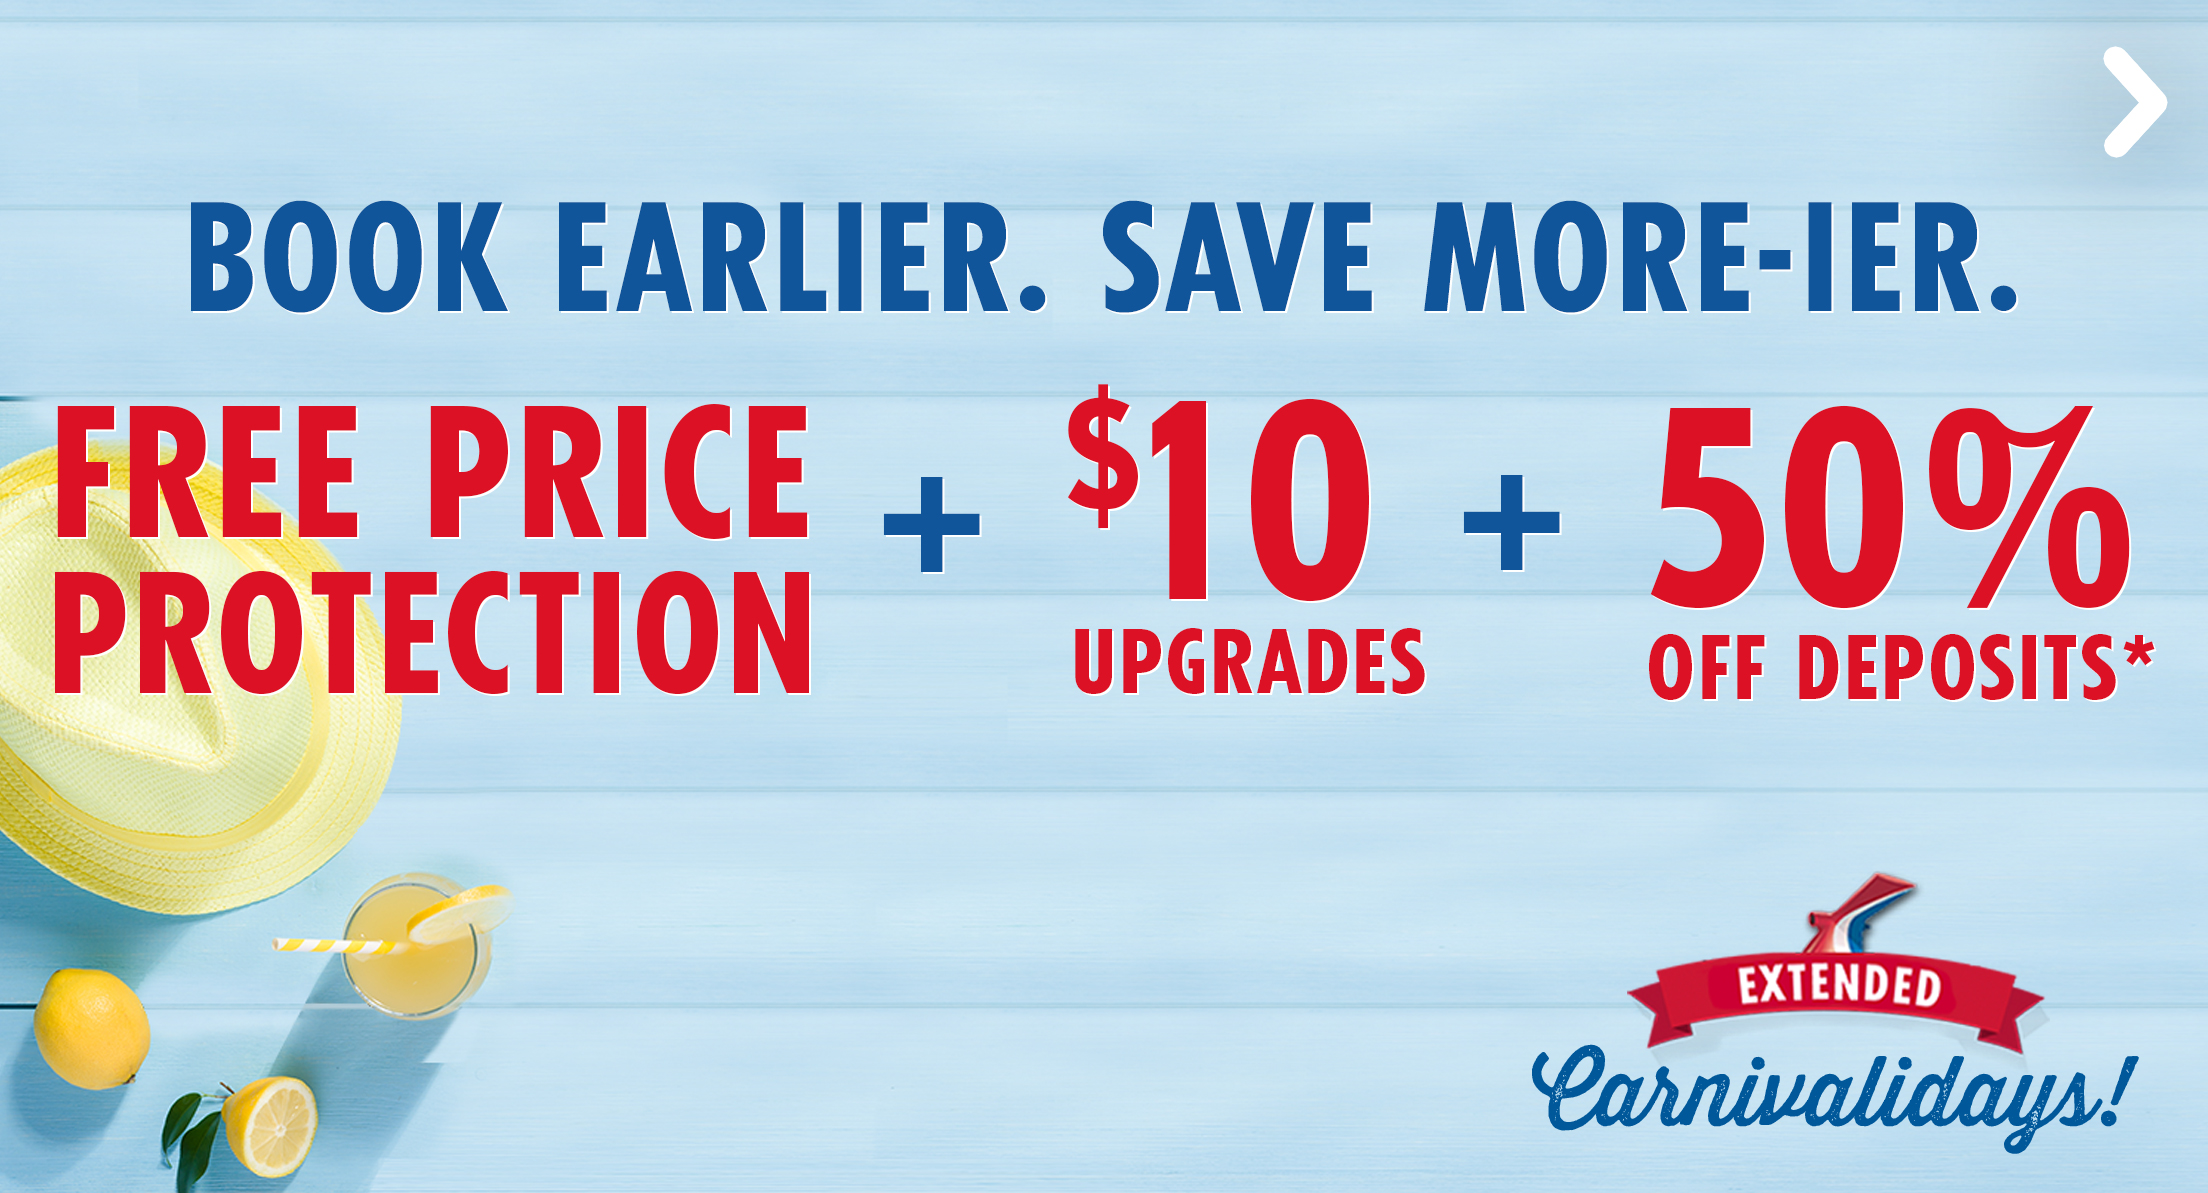 Early Save with Free Price Protection + $10 Upgrades + 50% Reduced Deposits - SEE THIS DEAL